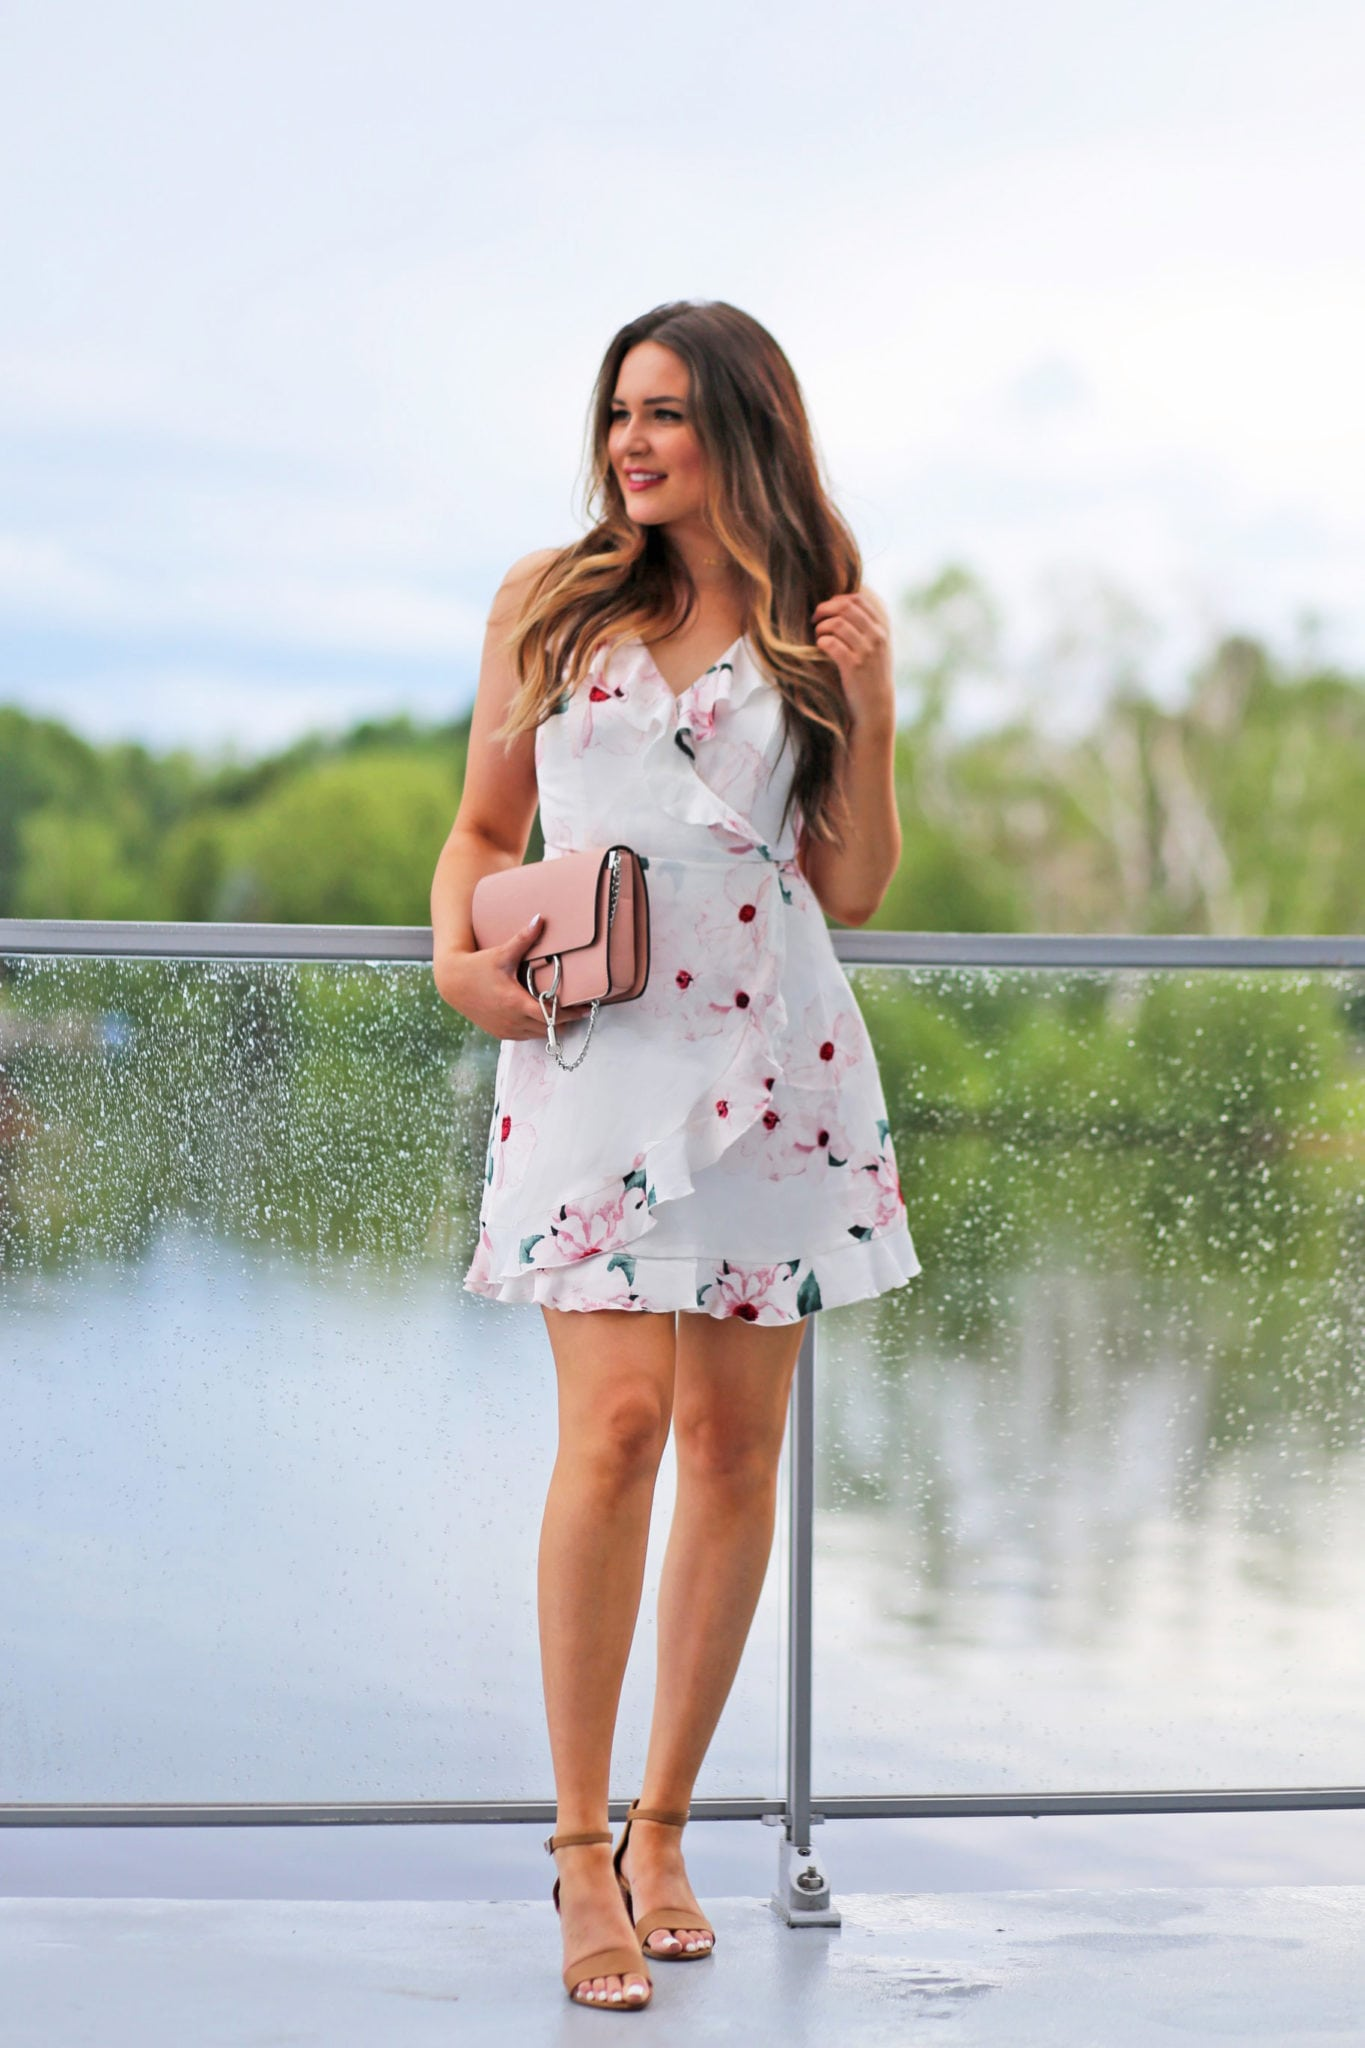 c73111cdc4d The Floral Dress You Need This Summer - Mash Elle